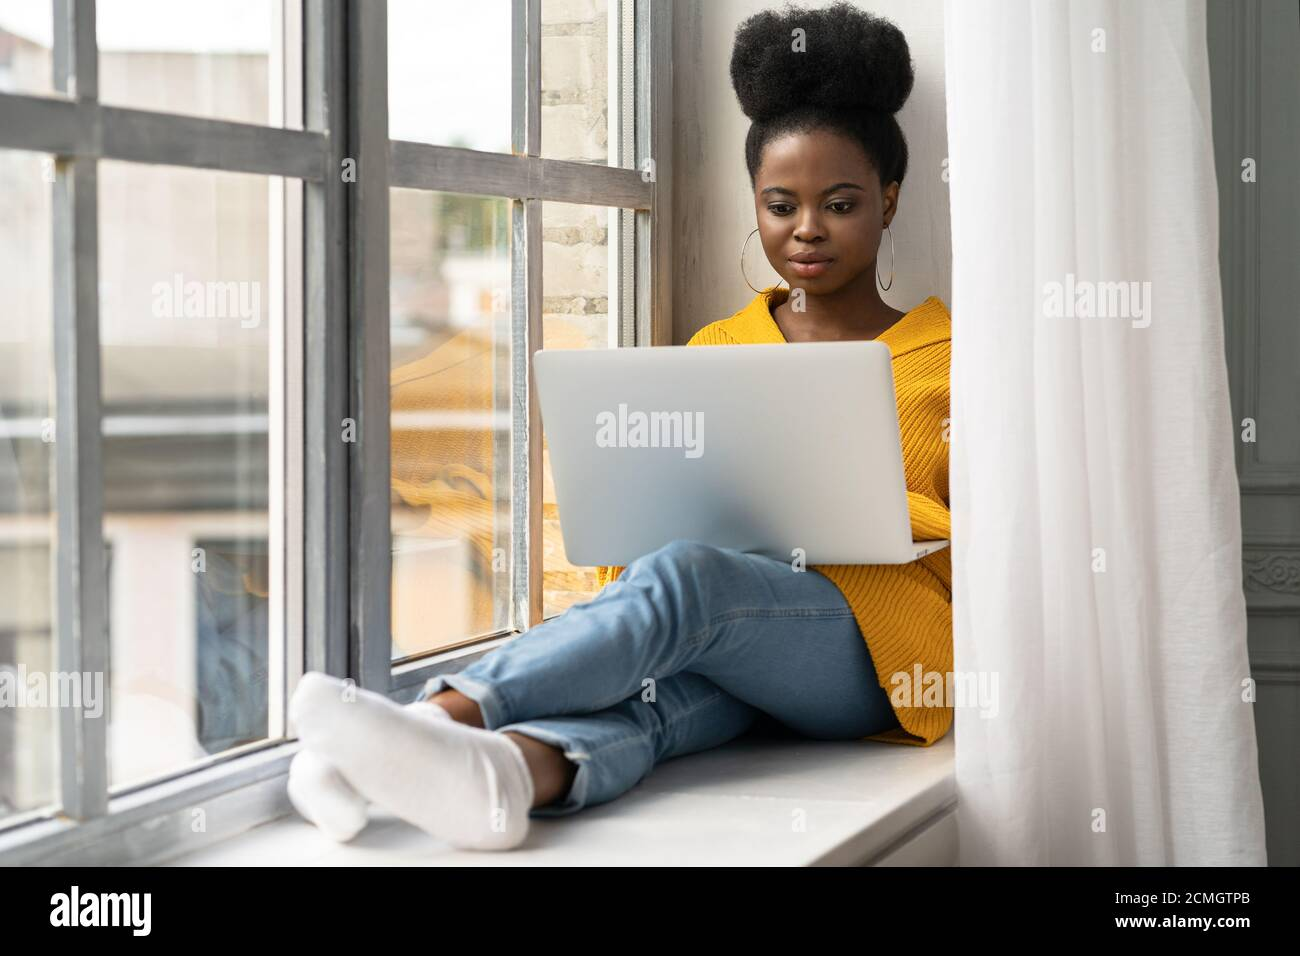 African American woman student with afro hairstyle wear yellow cardigan, sitting on windowsill, working doing remote job on laptop, learning using onl Stock Photo